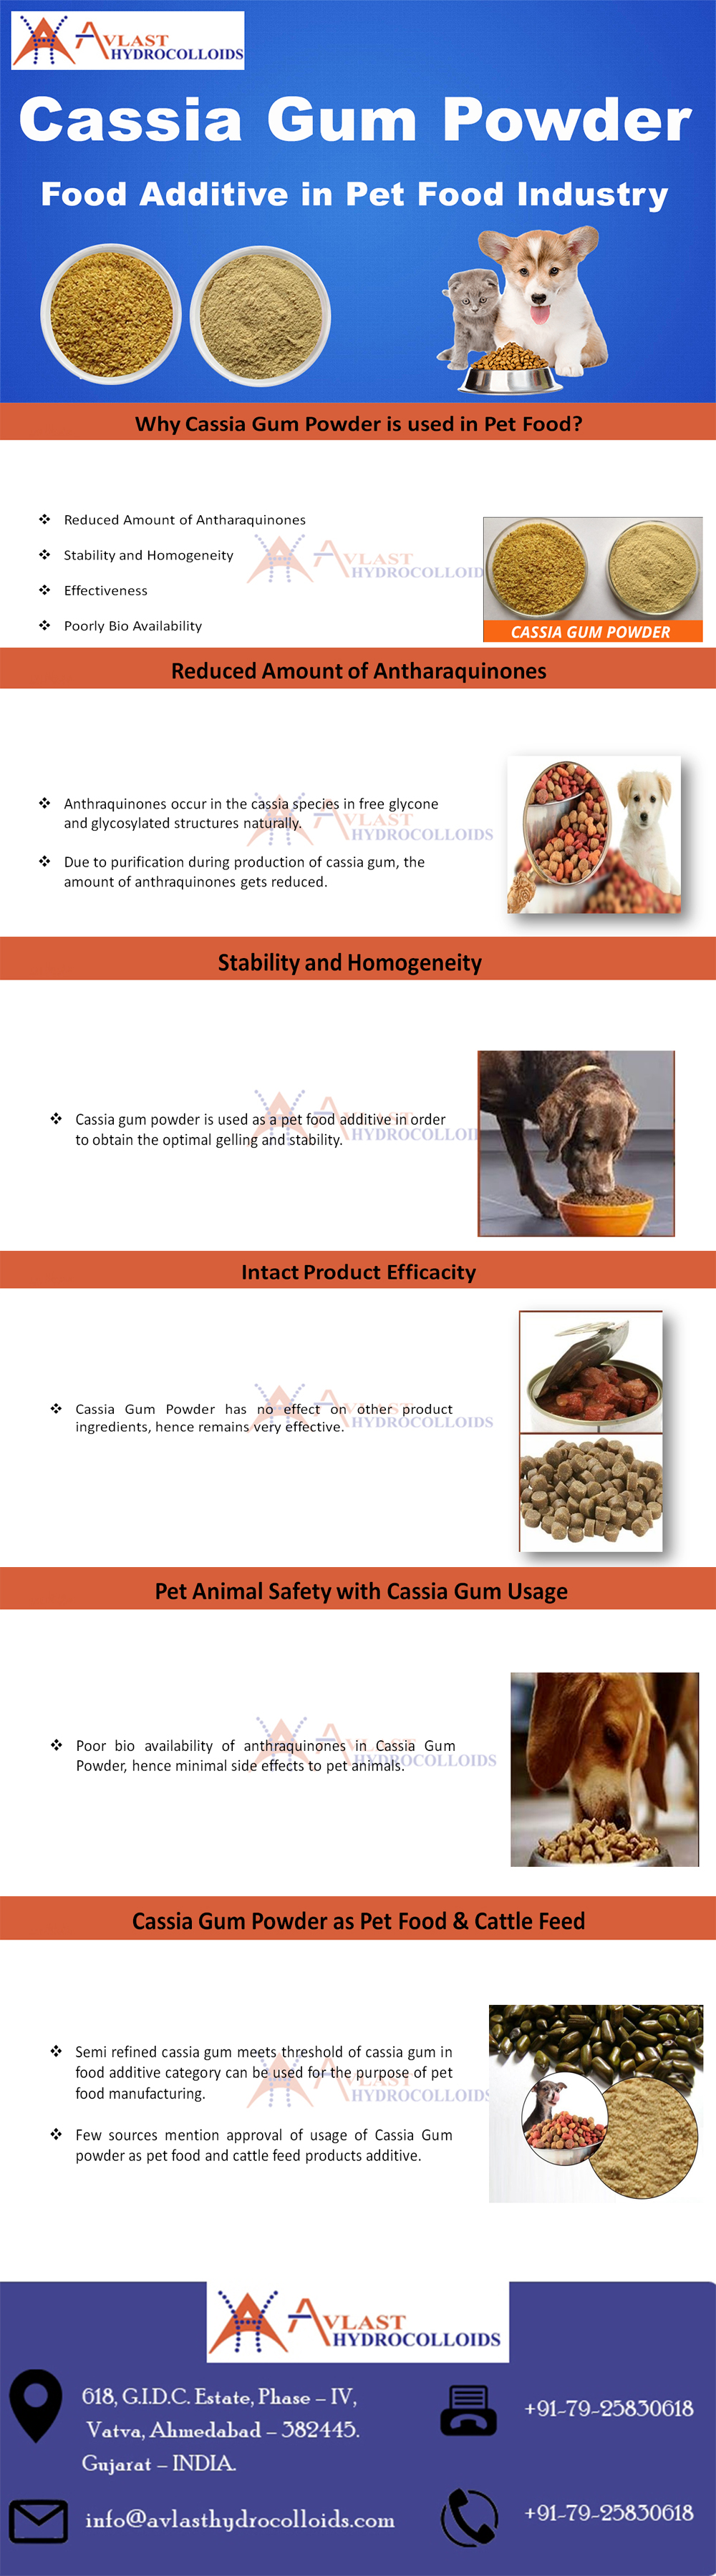 Cassia Gum Powder as a Food Additive in Pet Food Industry